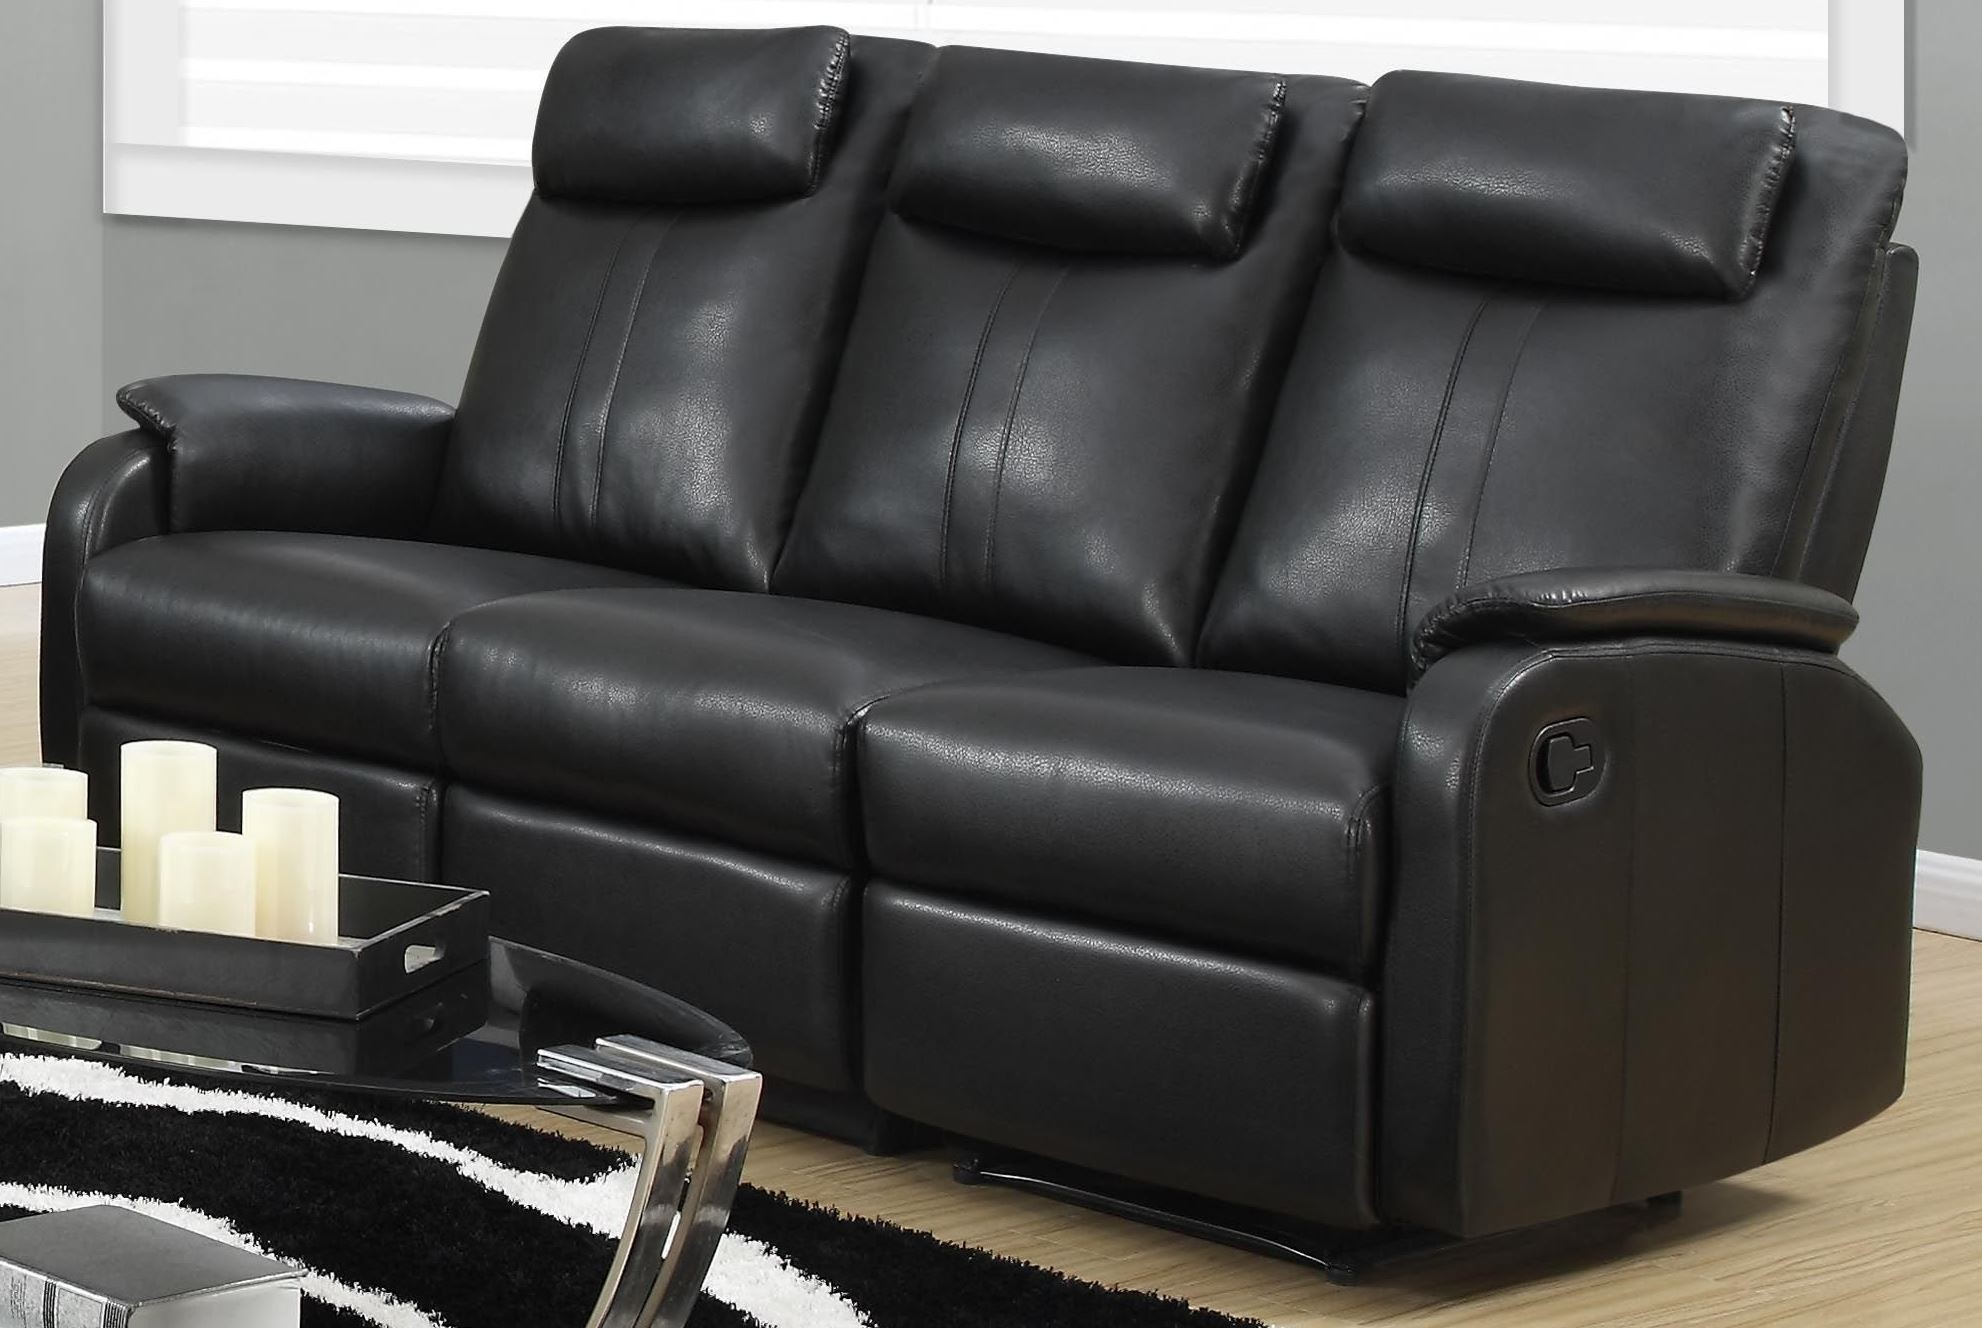 recliner sofa set 3 2 1 leather sectional with pull out bed 81bk-3 black bonded reclining from monarch ...